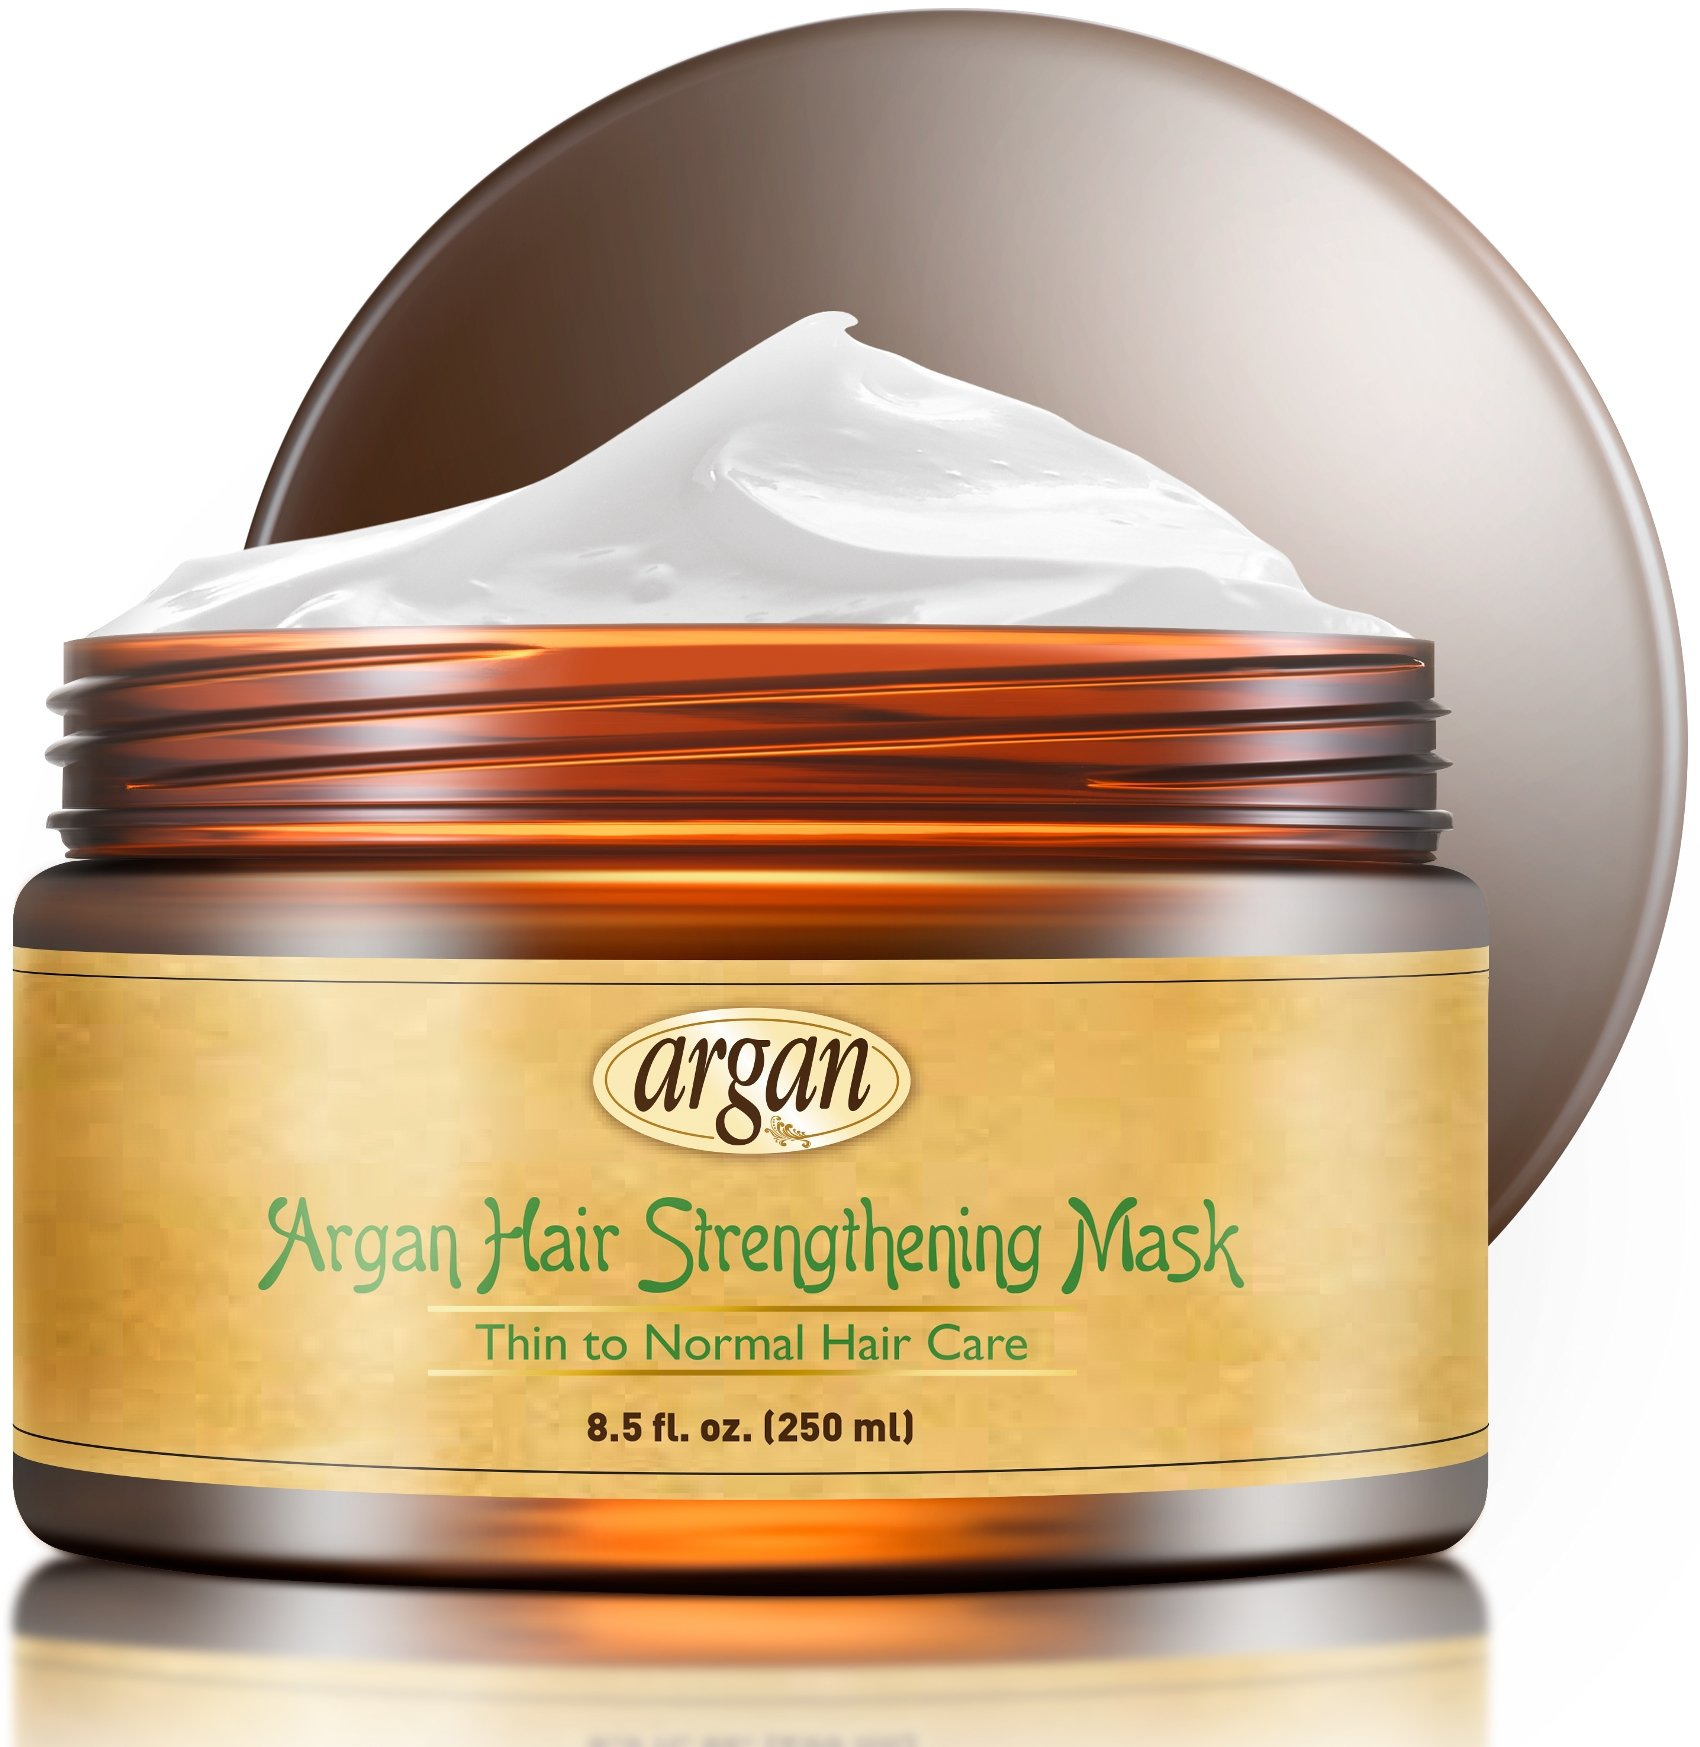 Vitamins Hair Strengthening Mask Deep Conditioner - Thin Fine Hair Care Moroccan Argan Product To Encourage Hair Growth and Reduce Hair Loss